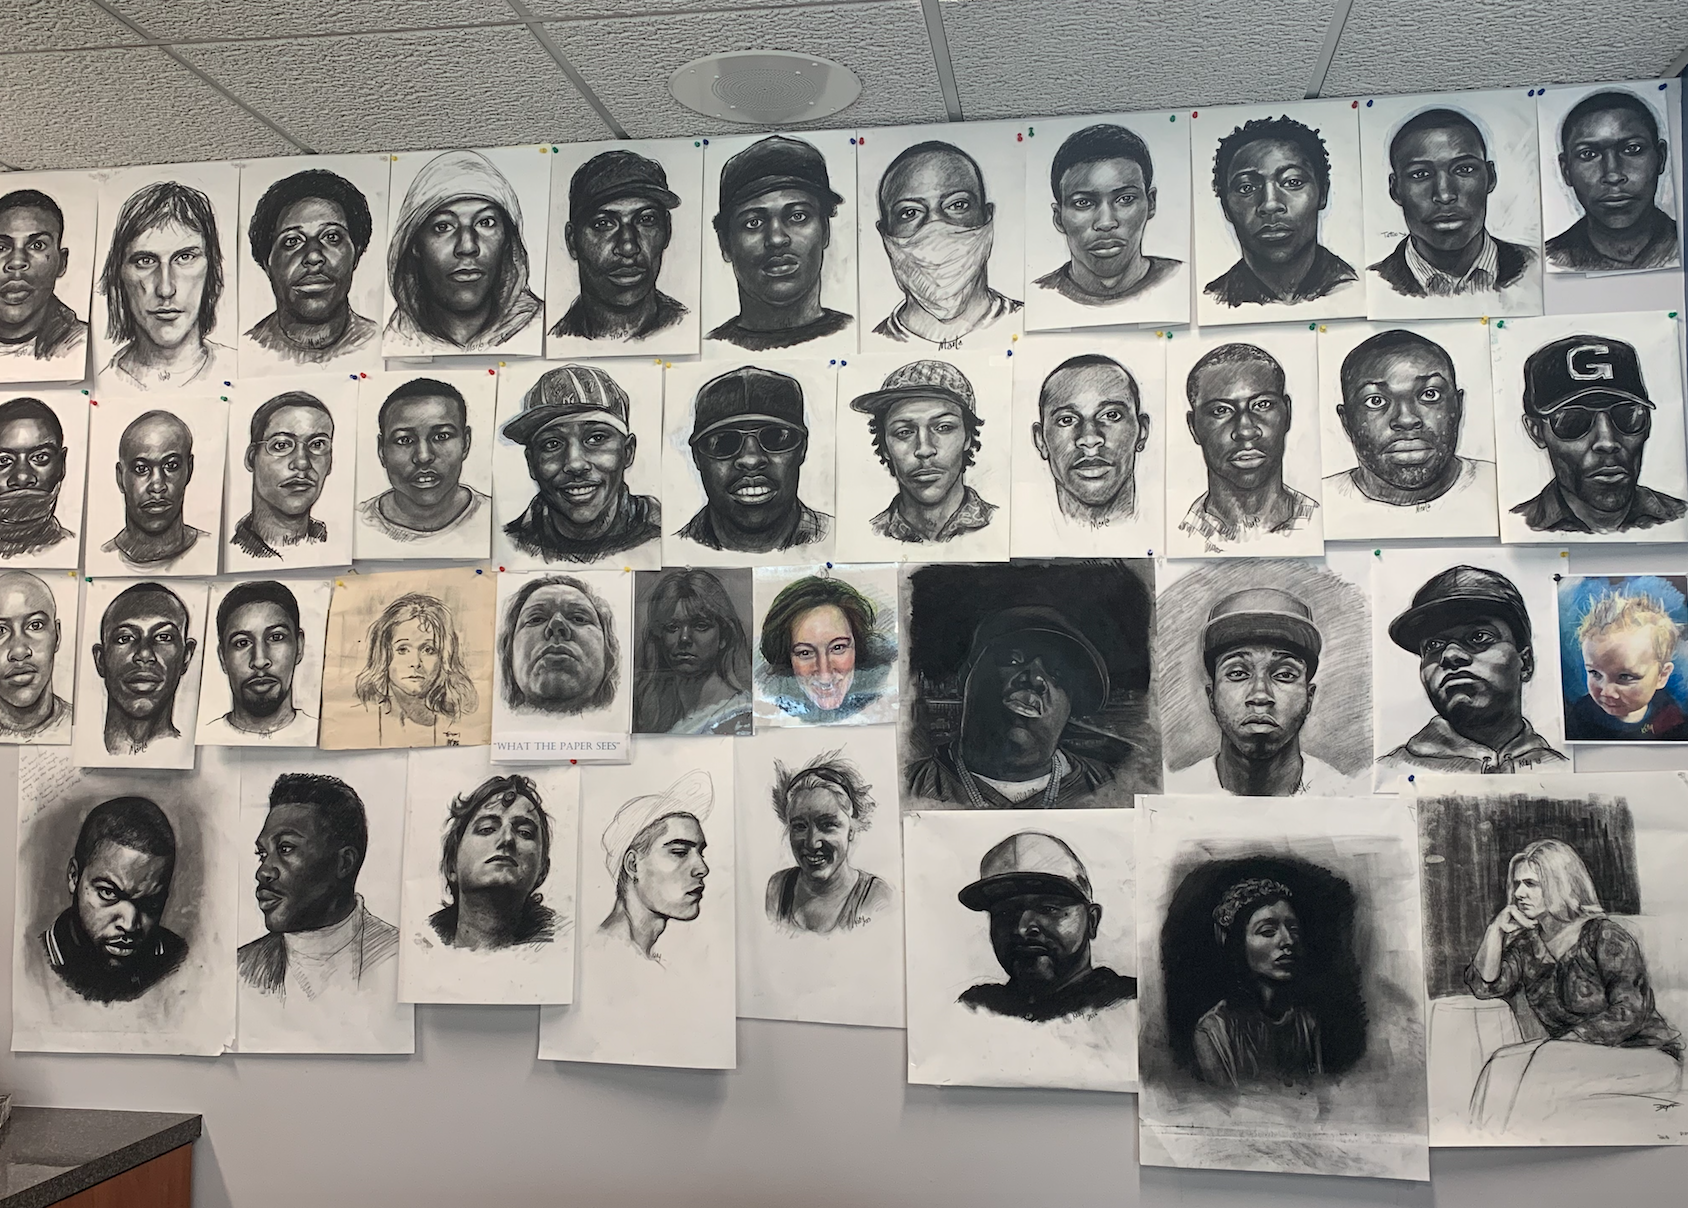 Forensic Sketch Artist Who Sketched Recent Suspect Has Solving